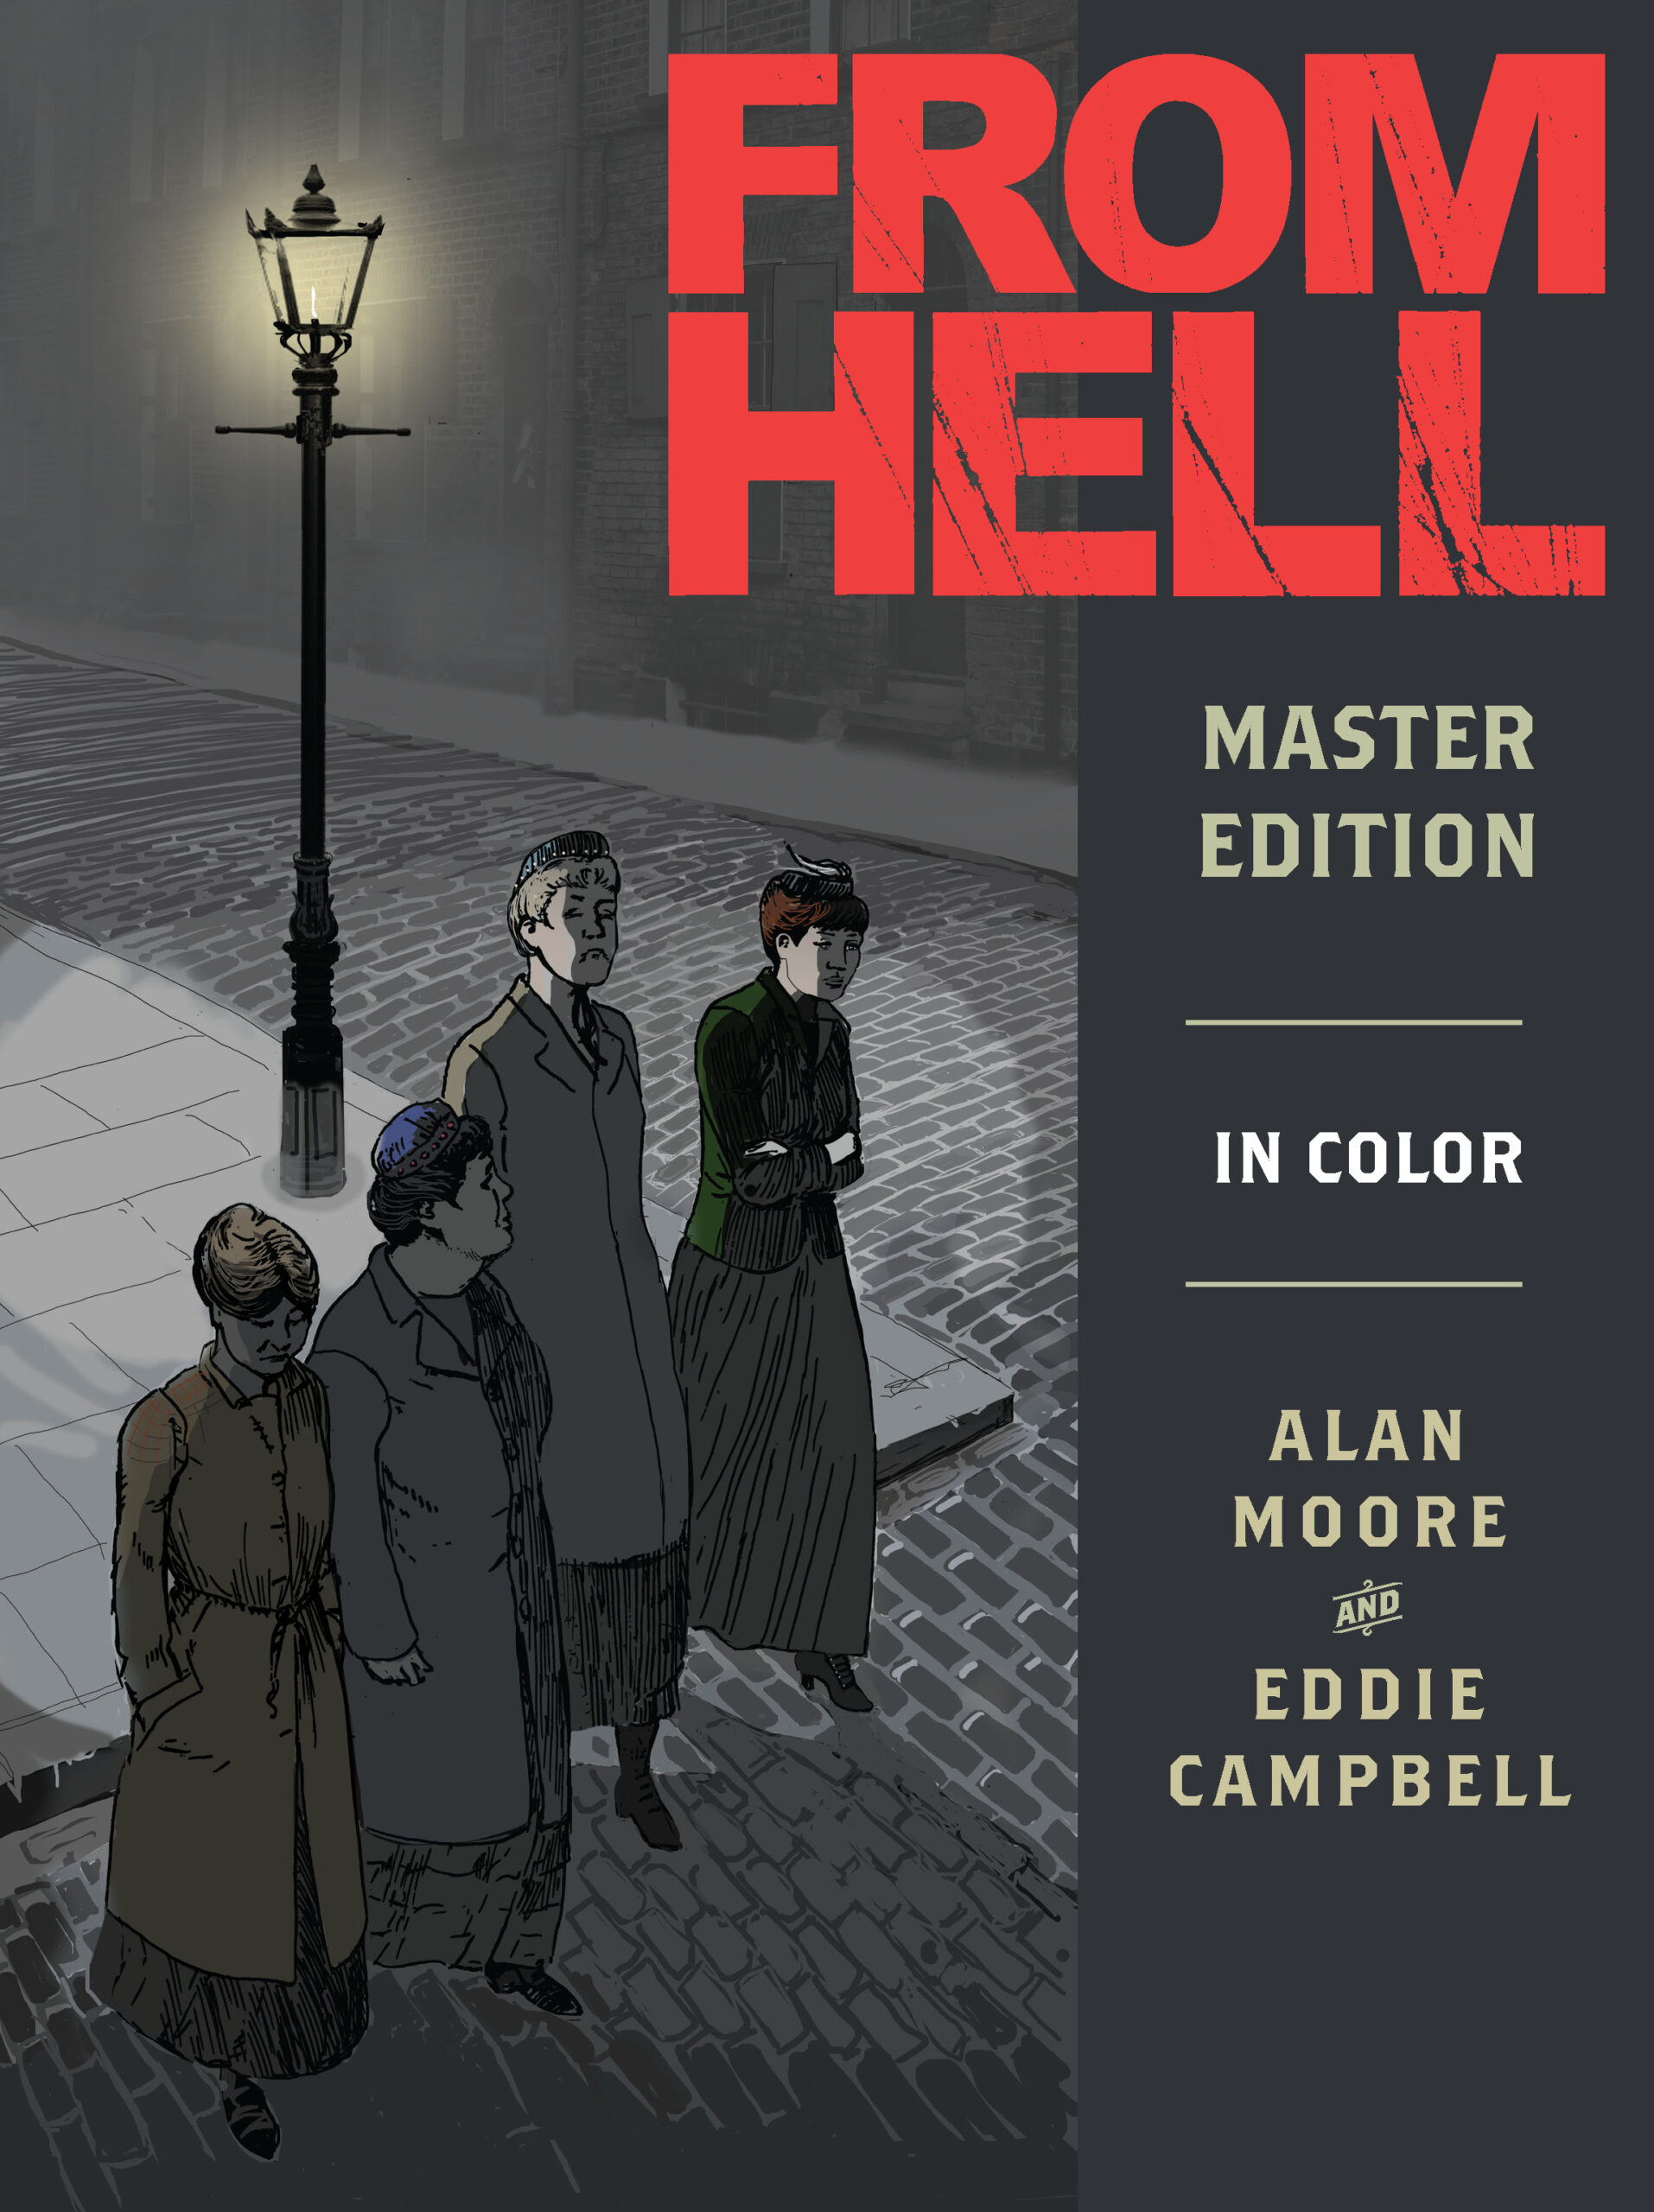 Experience Alan Moore and Eddie Campbell's FROM HELL, Fully Restored and In Color for the First Time!